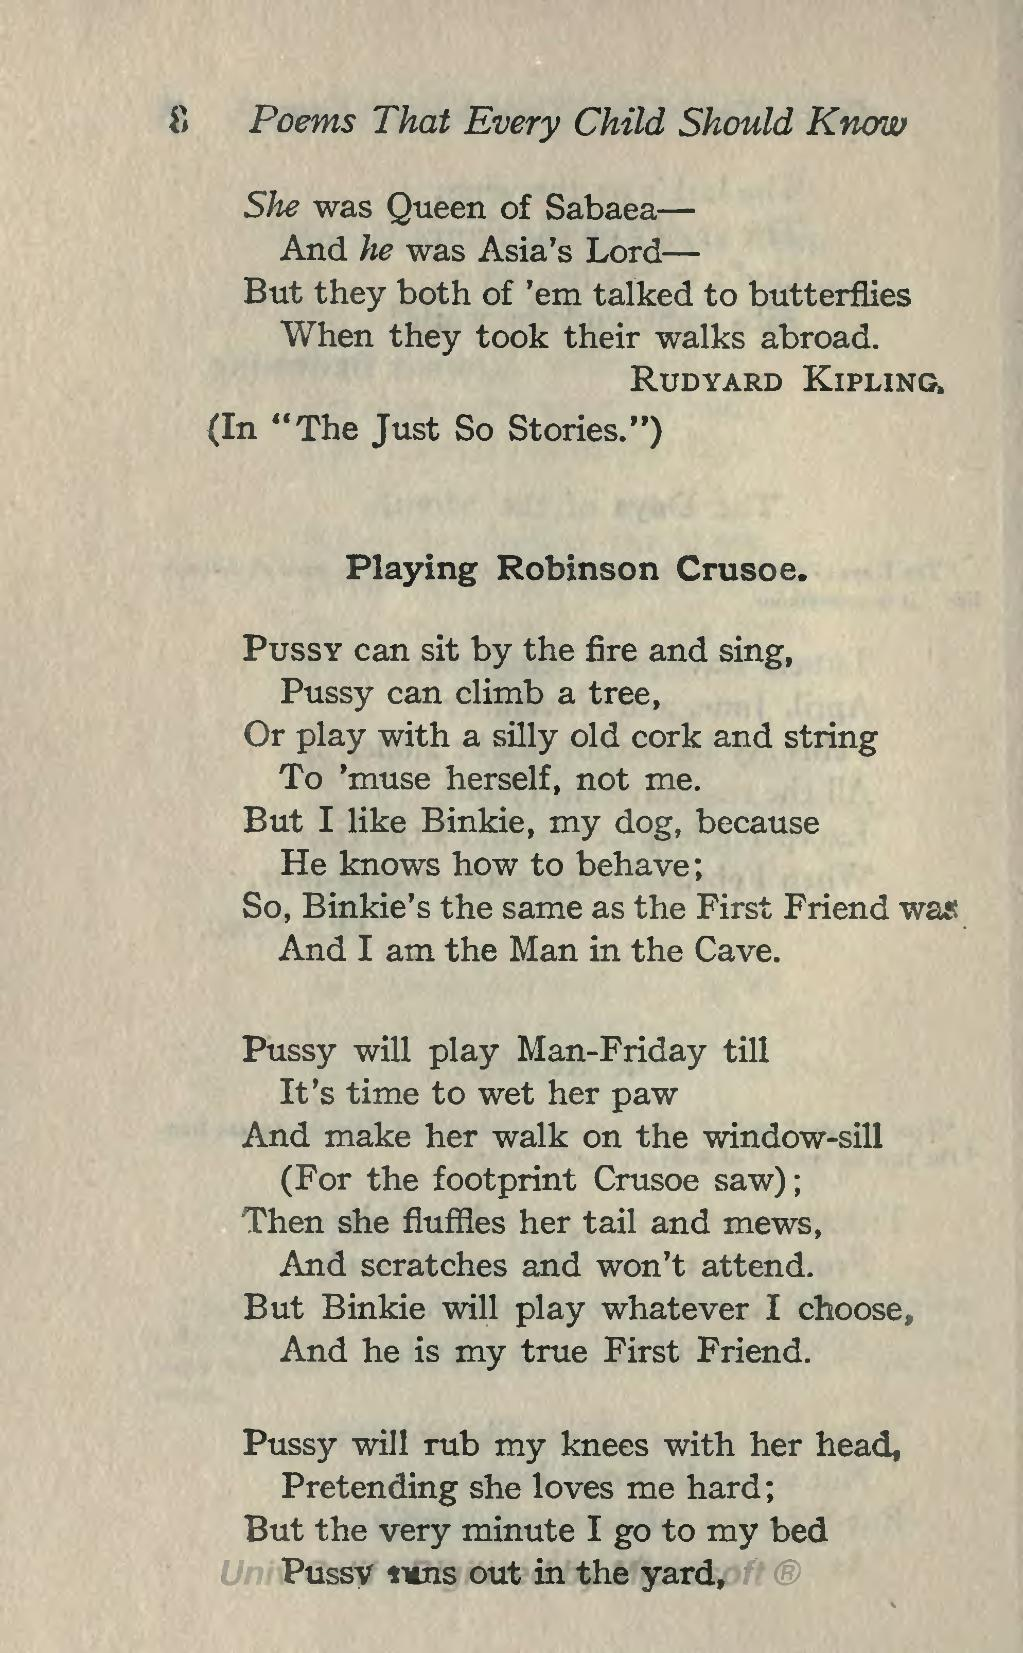 Pagepoems That Every Child Should Know Ed Burt 1904djvu46